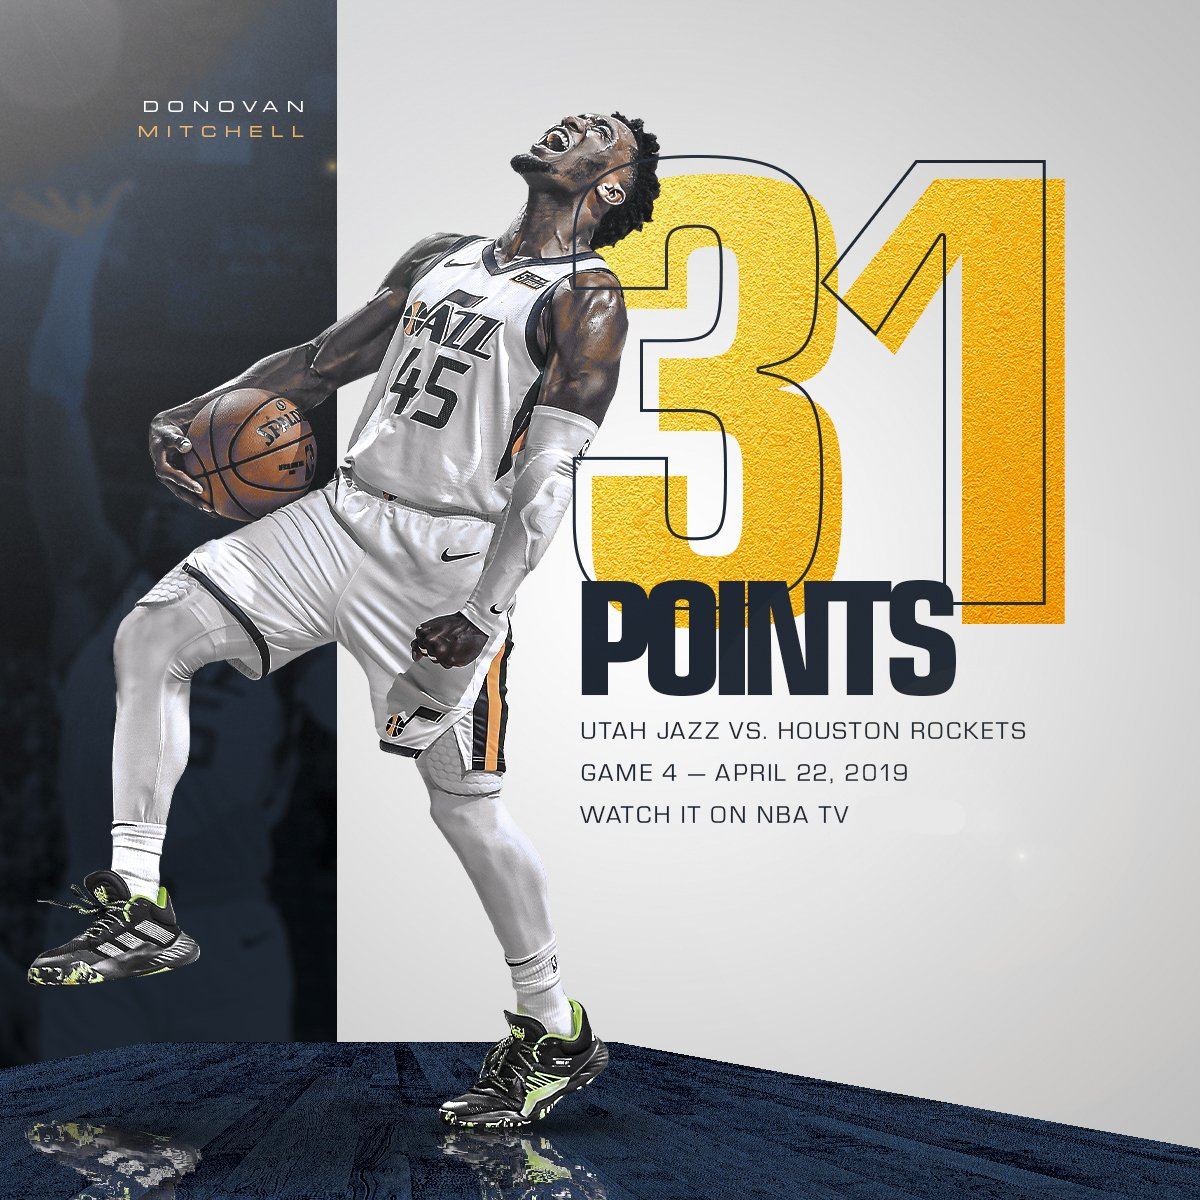 Utah Jazz | The Official Site of the Utah Jazz